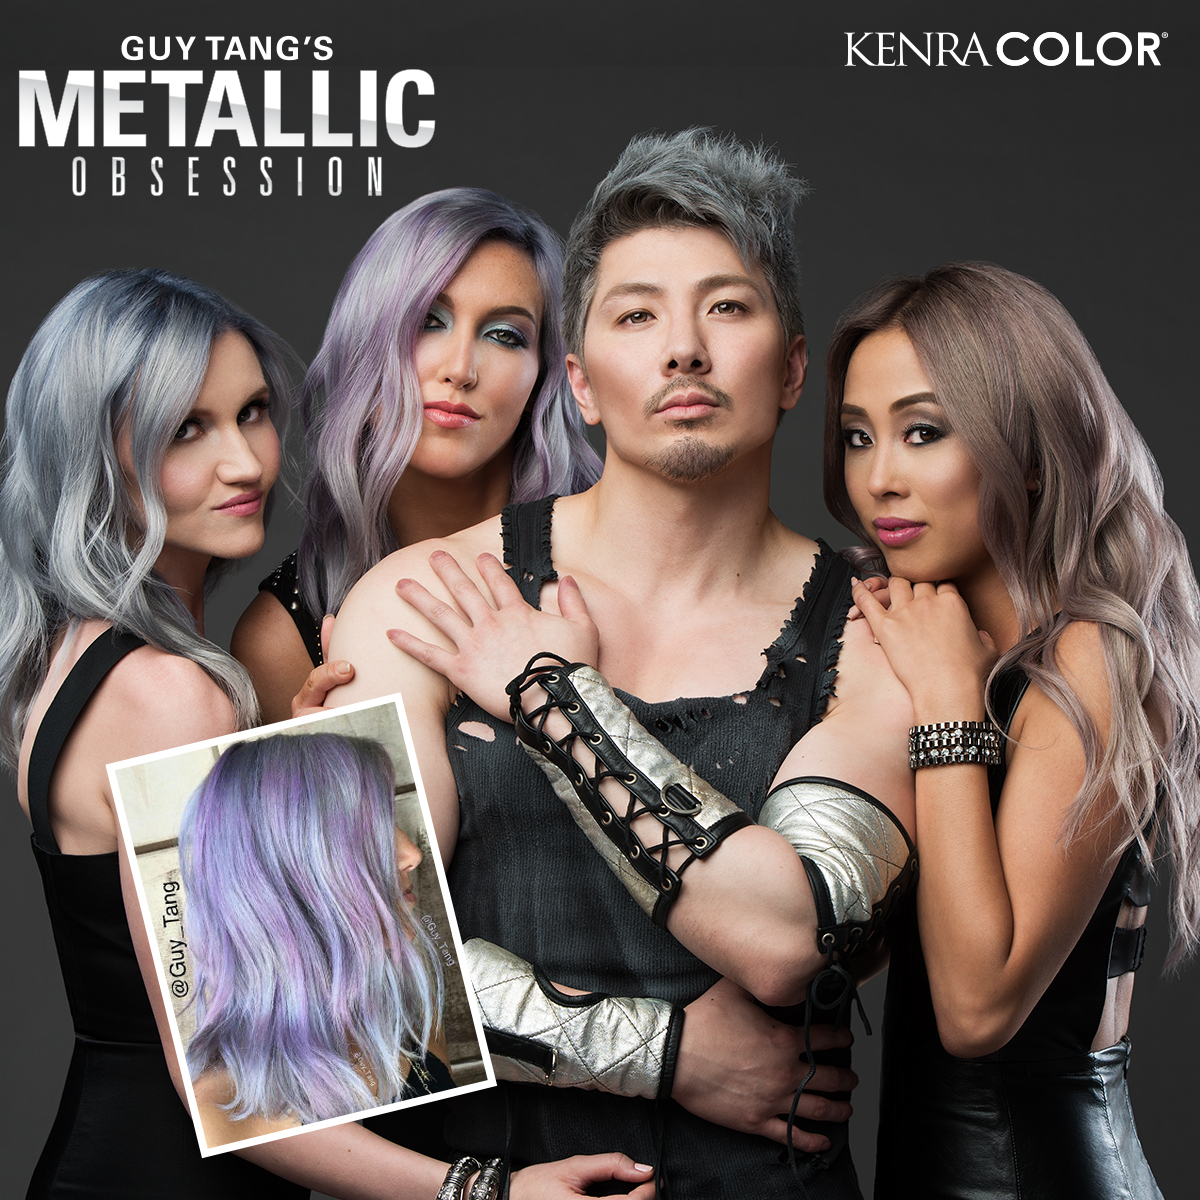 Kenra Color Collaborates with Guy Tang for Metallics Line